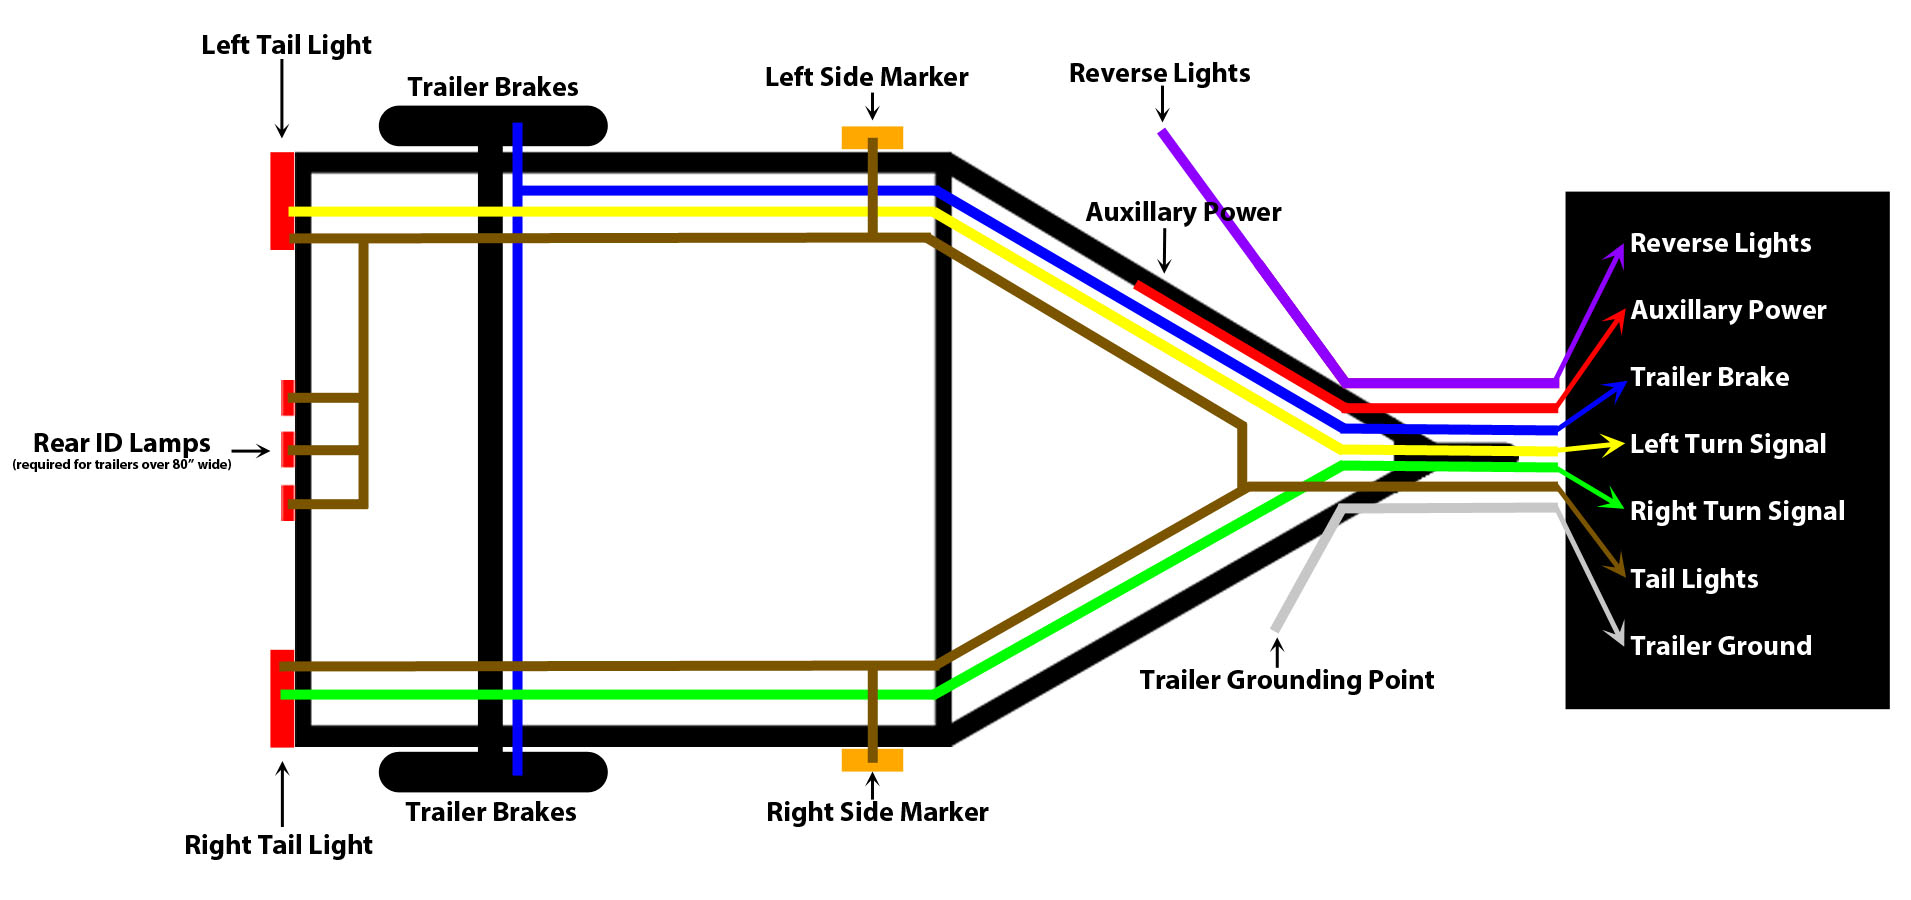 Ez Trailer Wiring Diagrams | Wiring Diagram - Miska Trailer Wiring Diagram